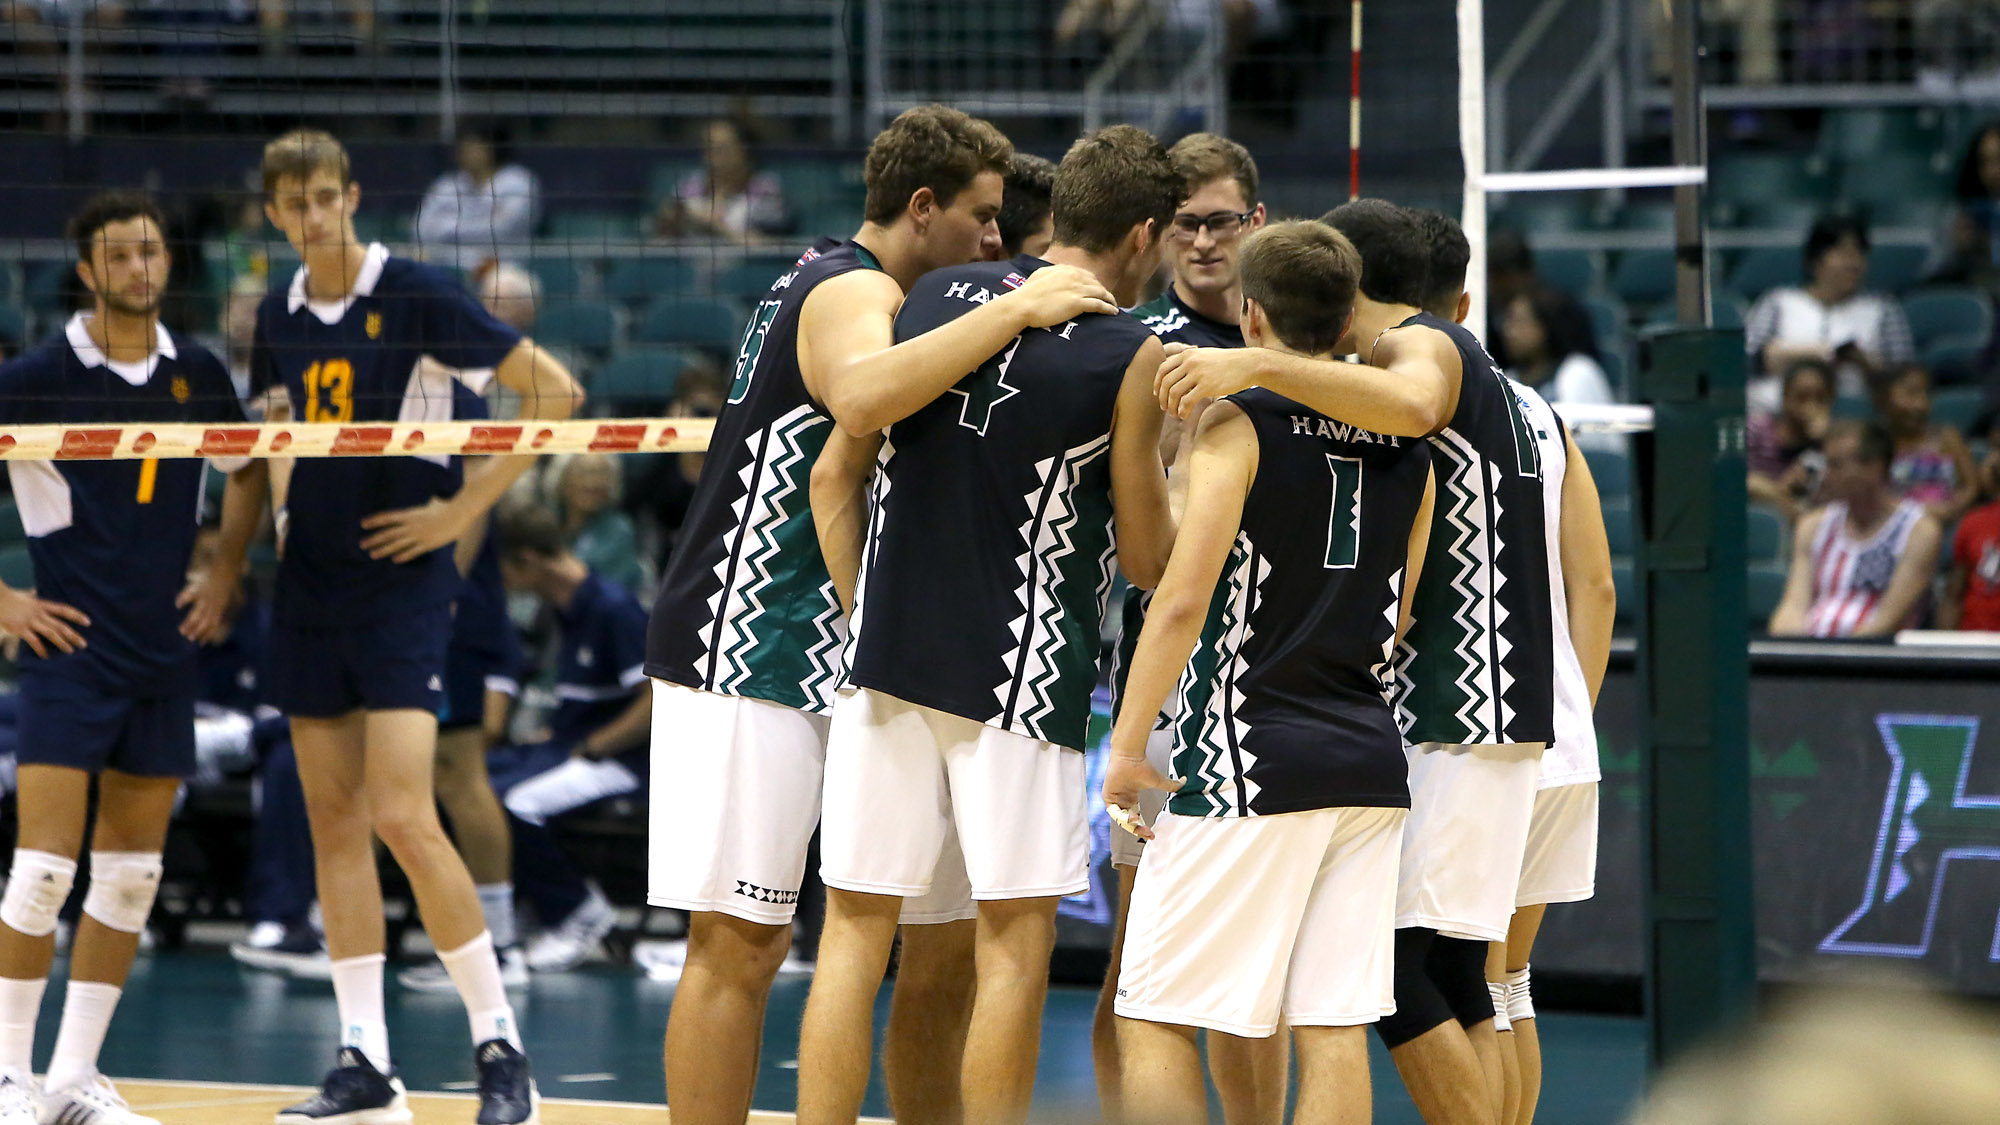 Men's Volleyball Hosts Fall Scrimmage With Team SportConX ...